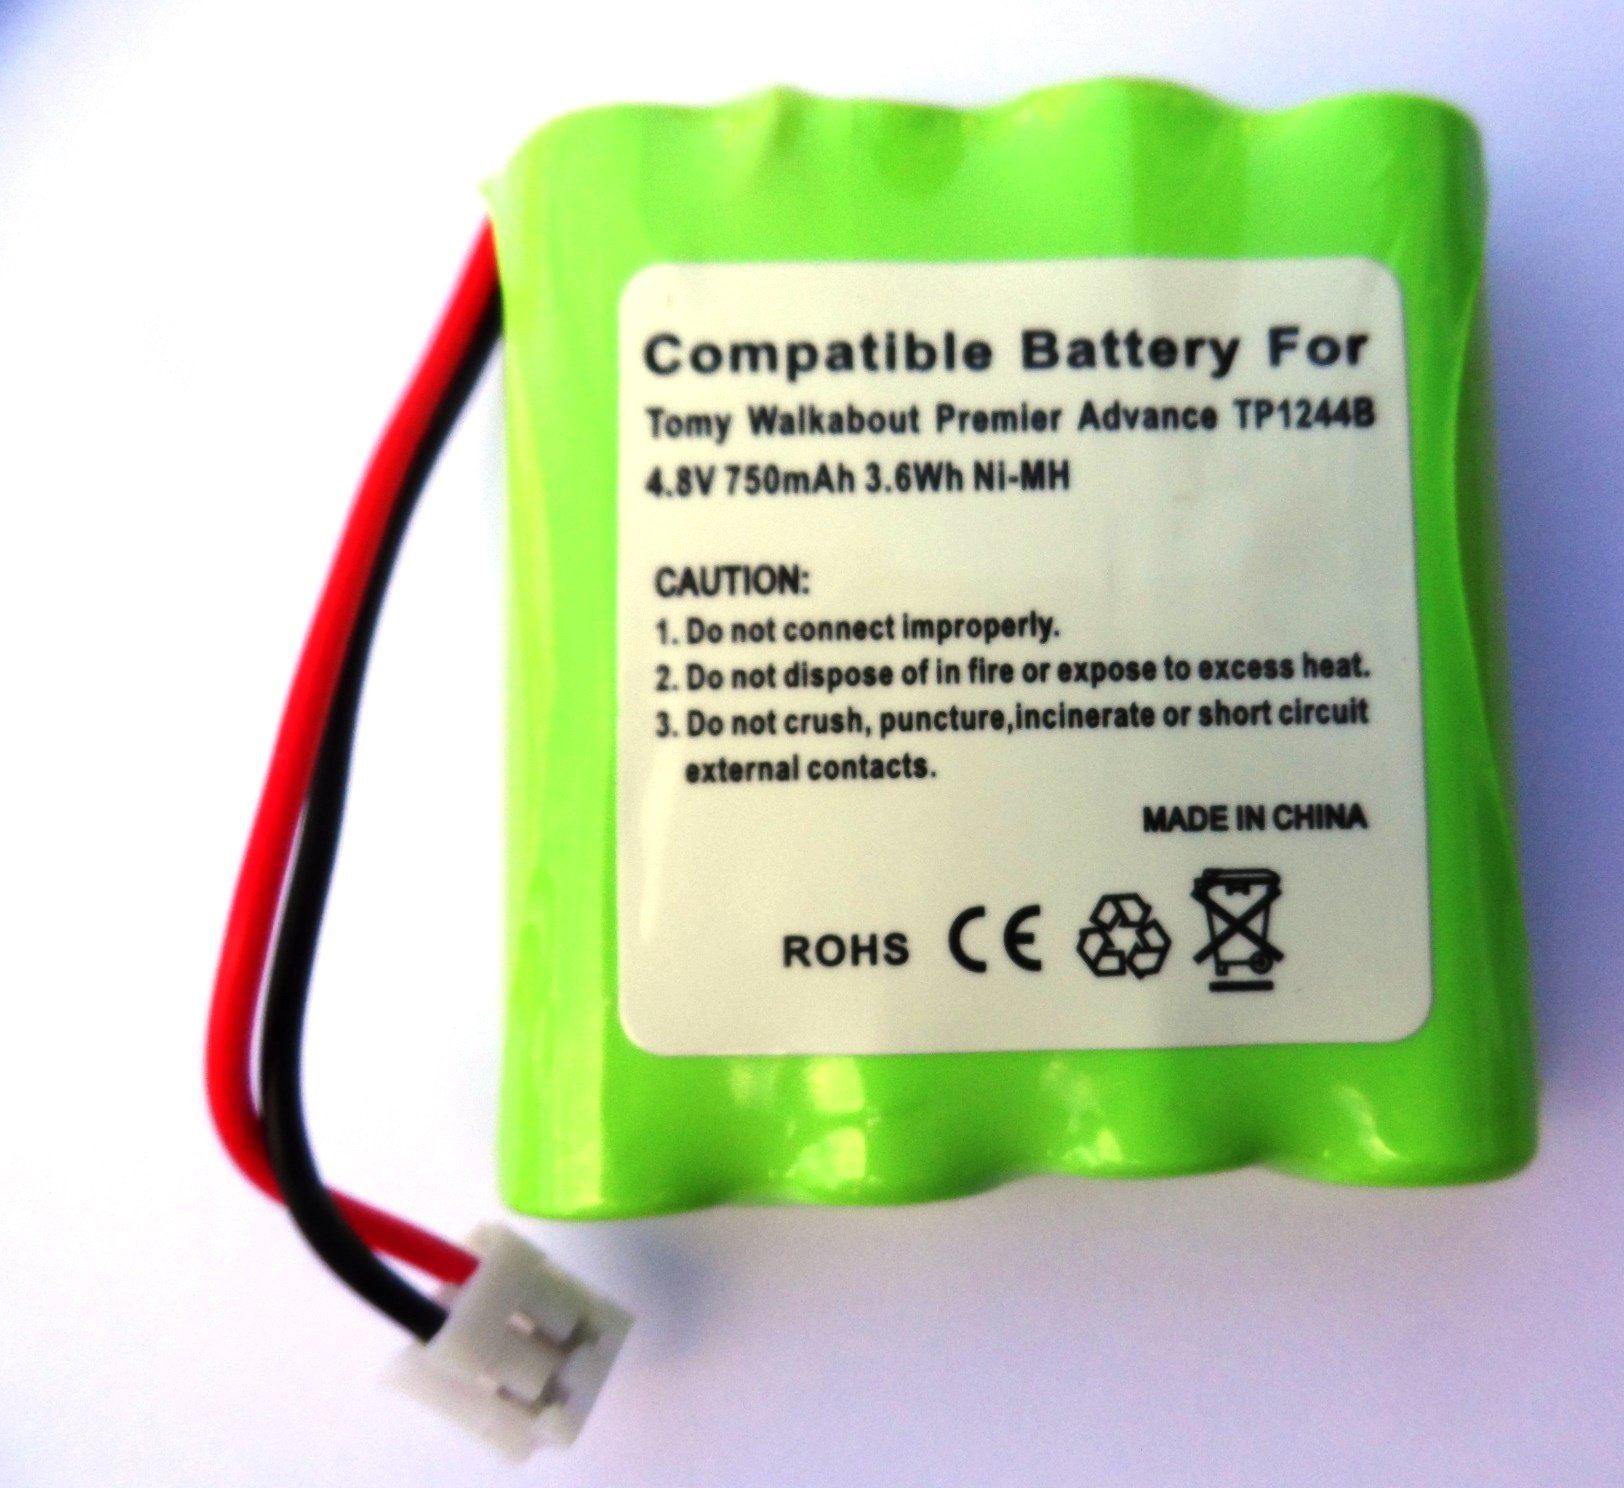 tp1344b batteria Pack per Tomy Wal kabout Babyphone, Batteria Ricaricabile, 4,8�V